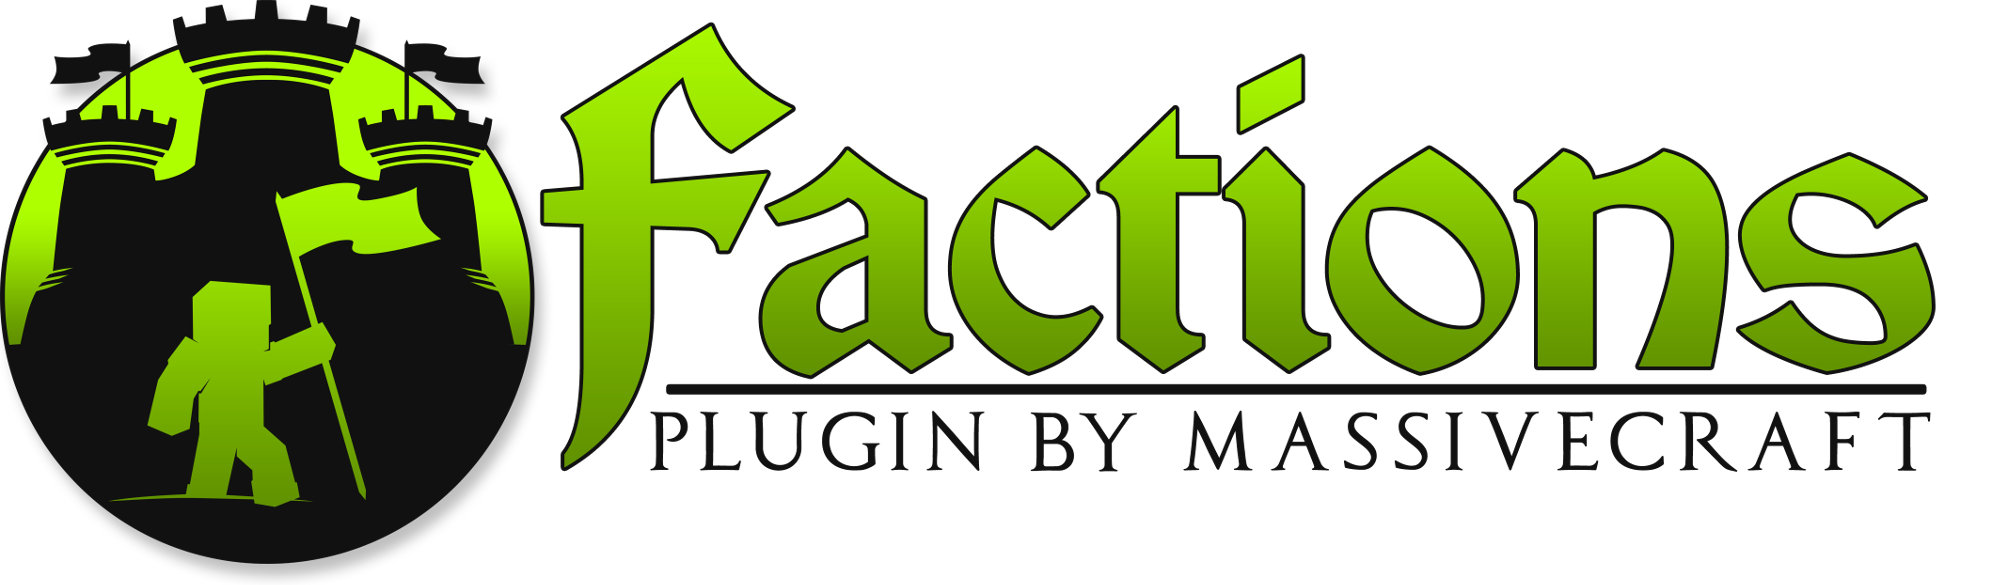 Factions Overview and Player Guide - MassiveCraft